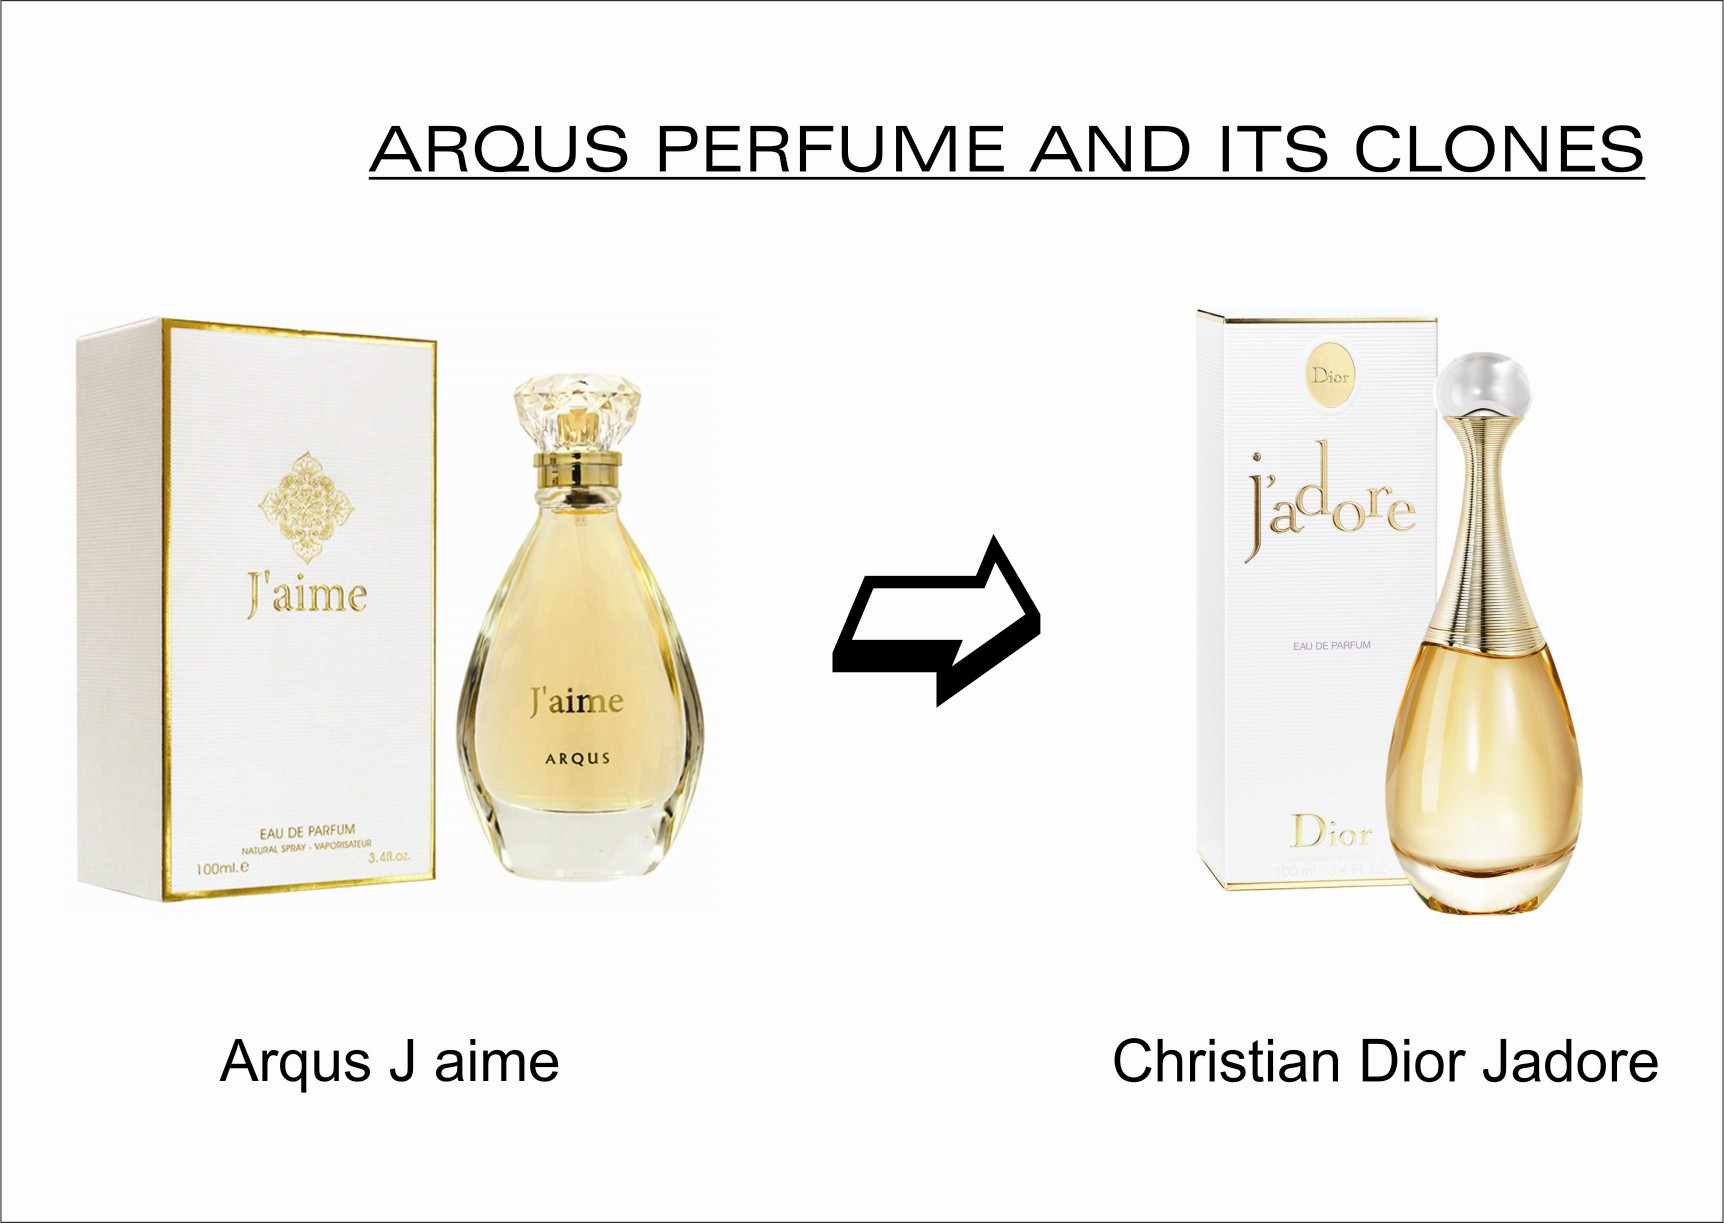 arqus-j-aime-perfume-for-women-100-ml-edp-by-lattafa-perfumes-christian-dior-j-adore-perfume-for-women-100-ml-edp